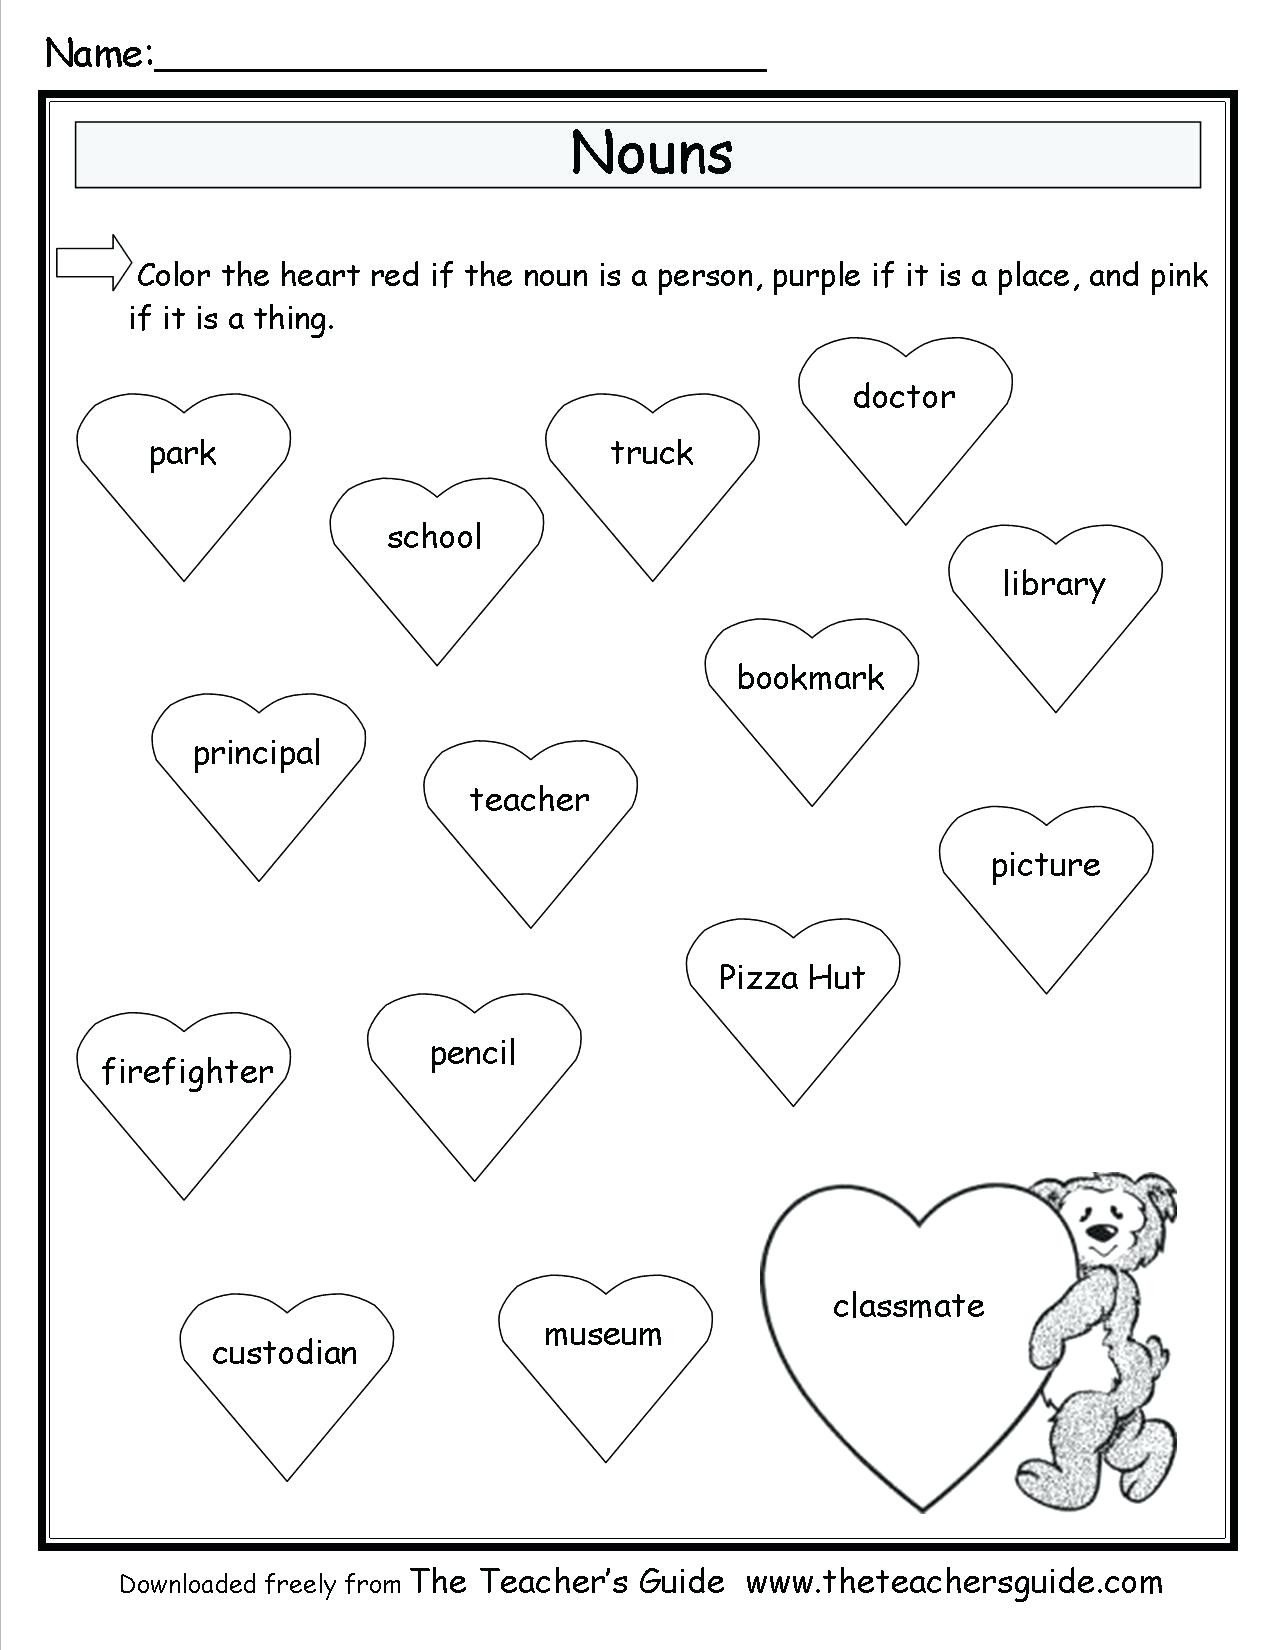 Veterans Day Worksheets for Kindergarten Veterans Day Worksheets to You Veterans Day Worksheets